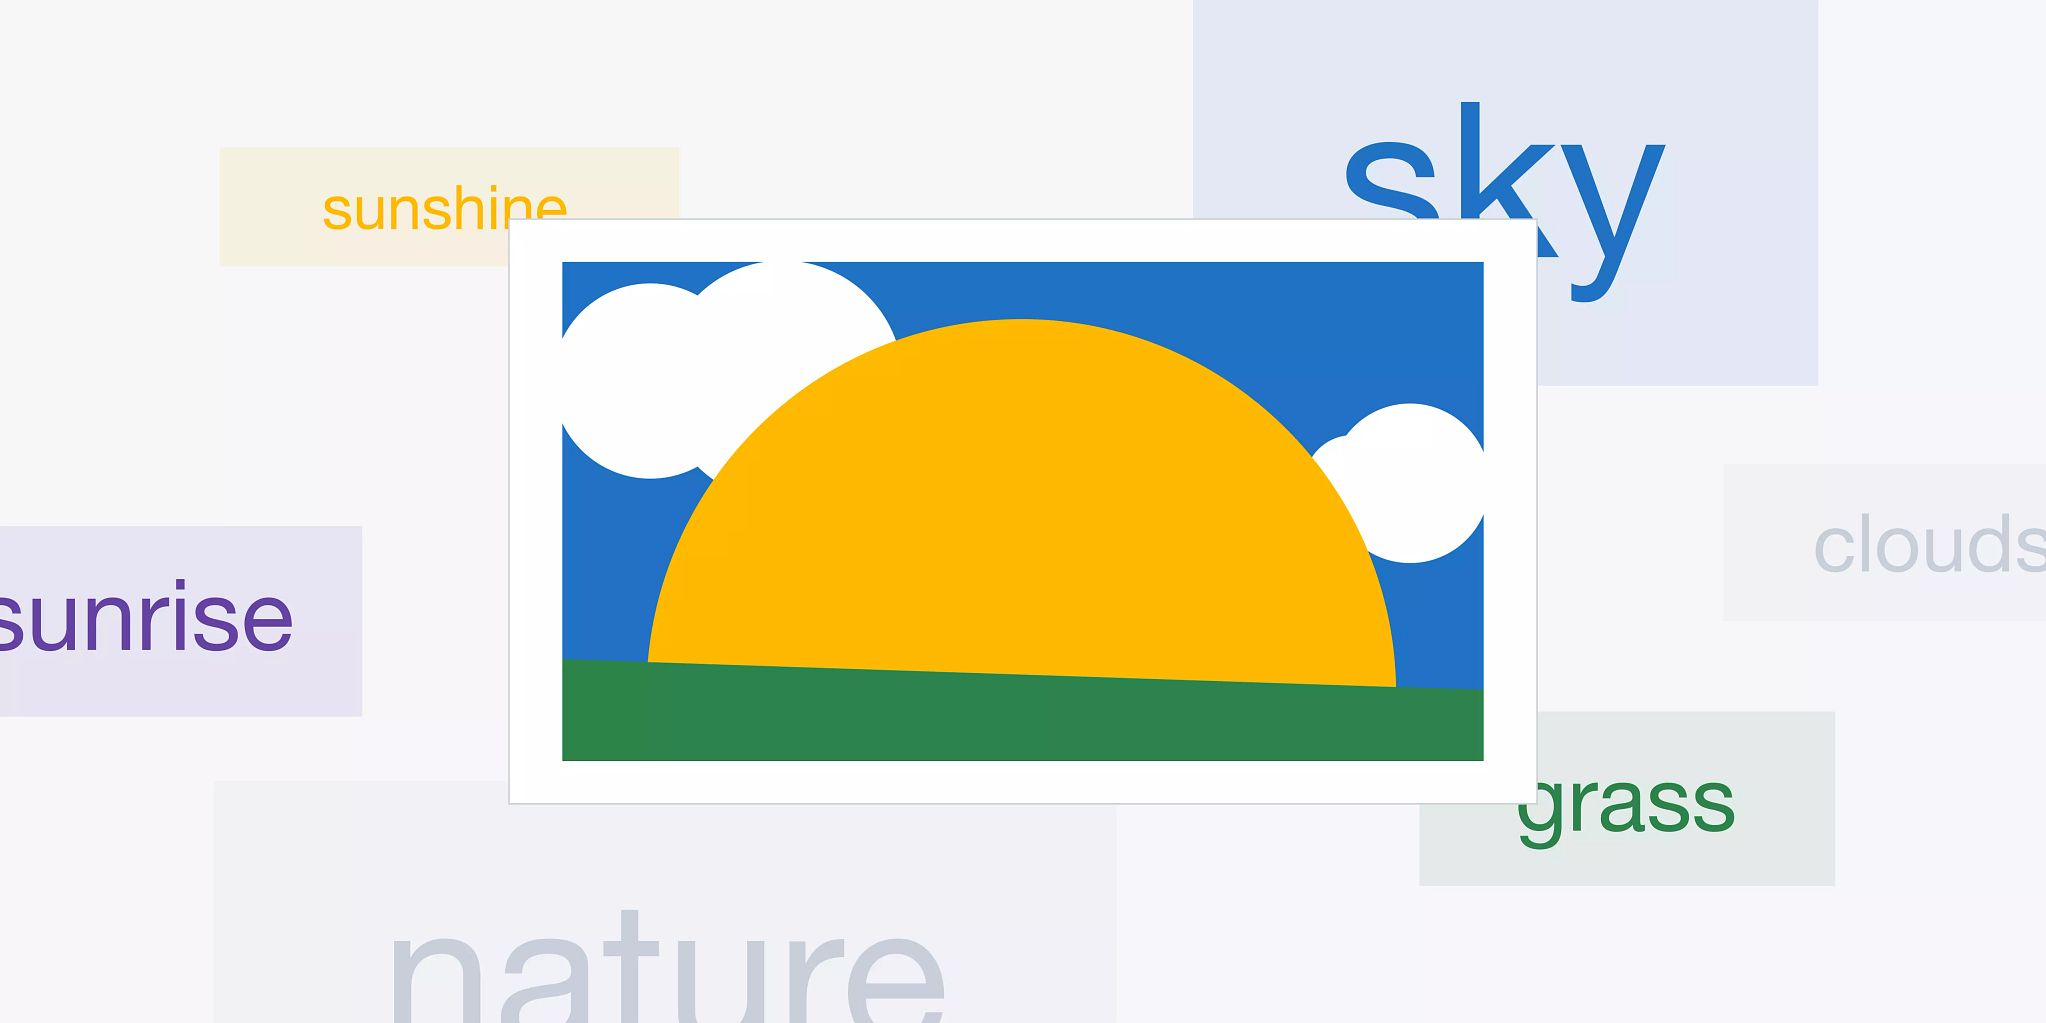 Simple illustration of a picture of the sun with grass, clouds, and sky in the middle with words (metadata) that describe the image floating behind the sun picture.